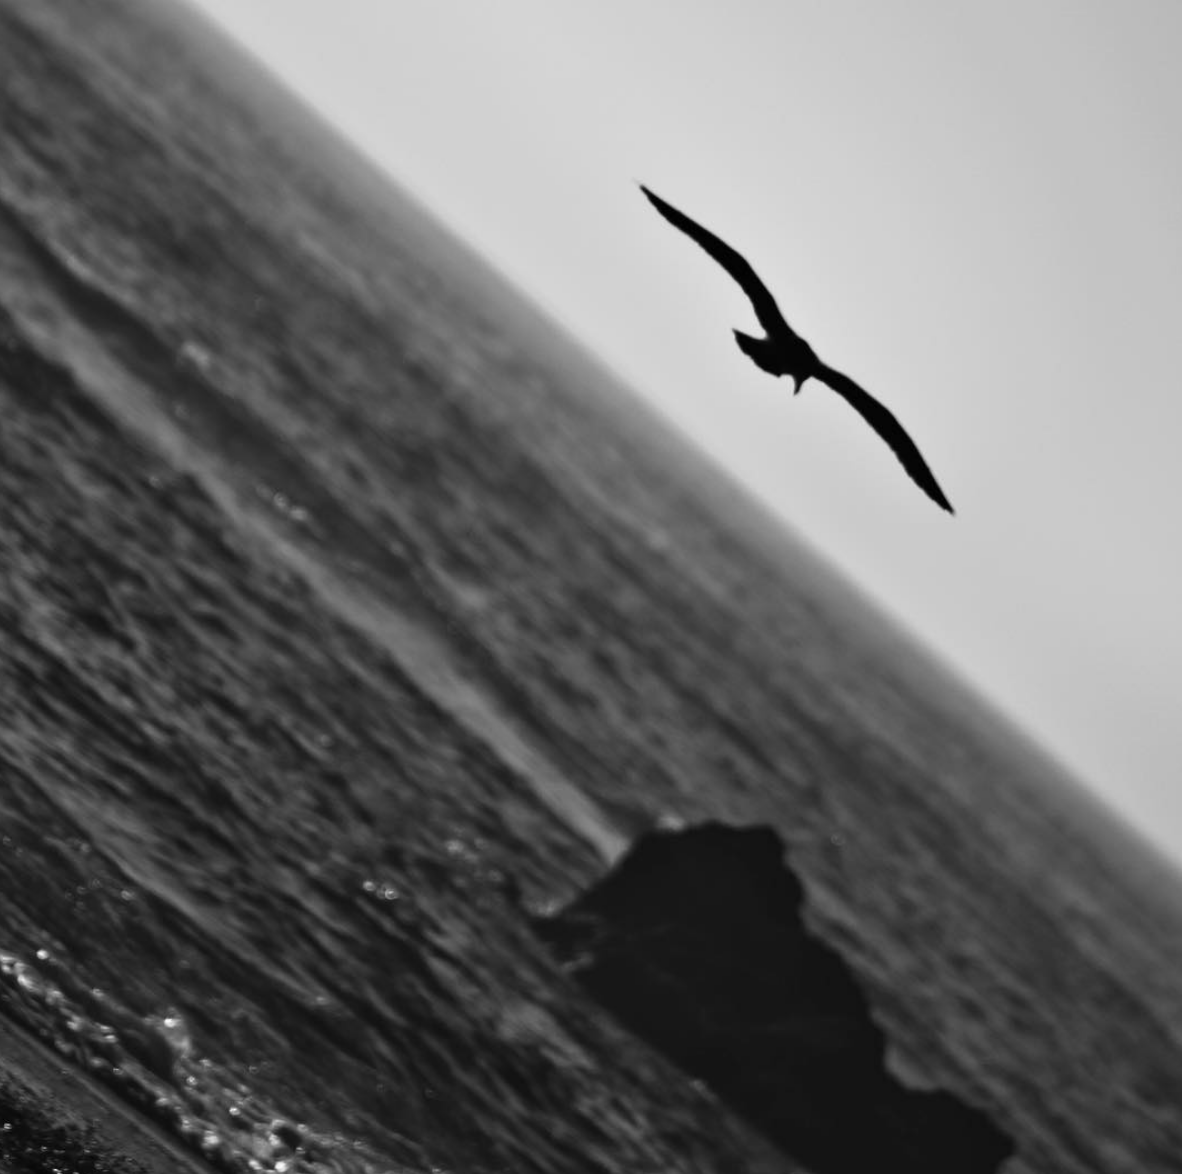 Seagull flying over the waters of the Atlantic Ocean